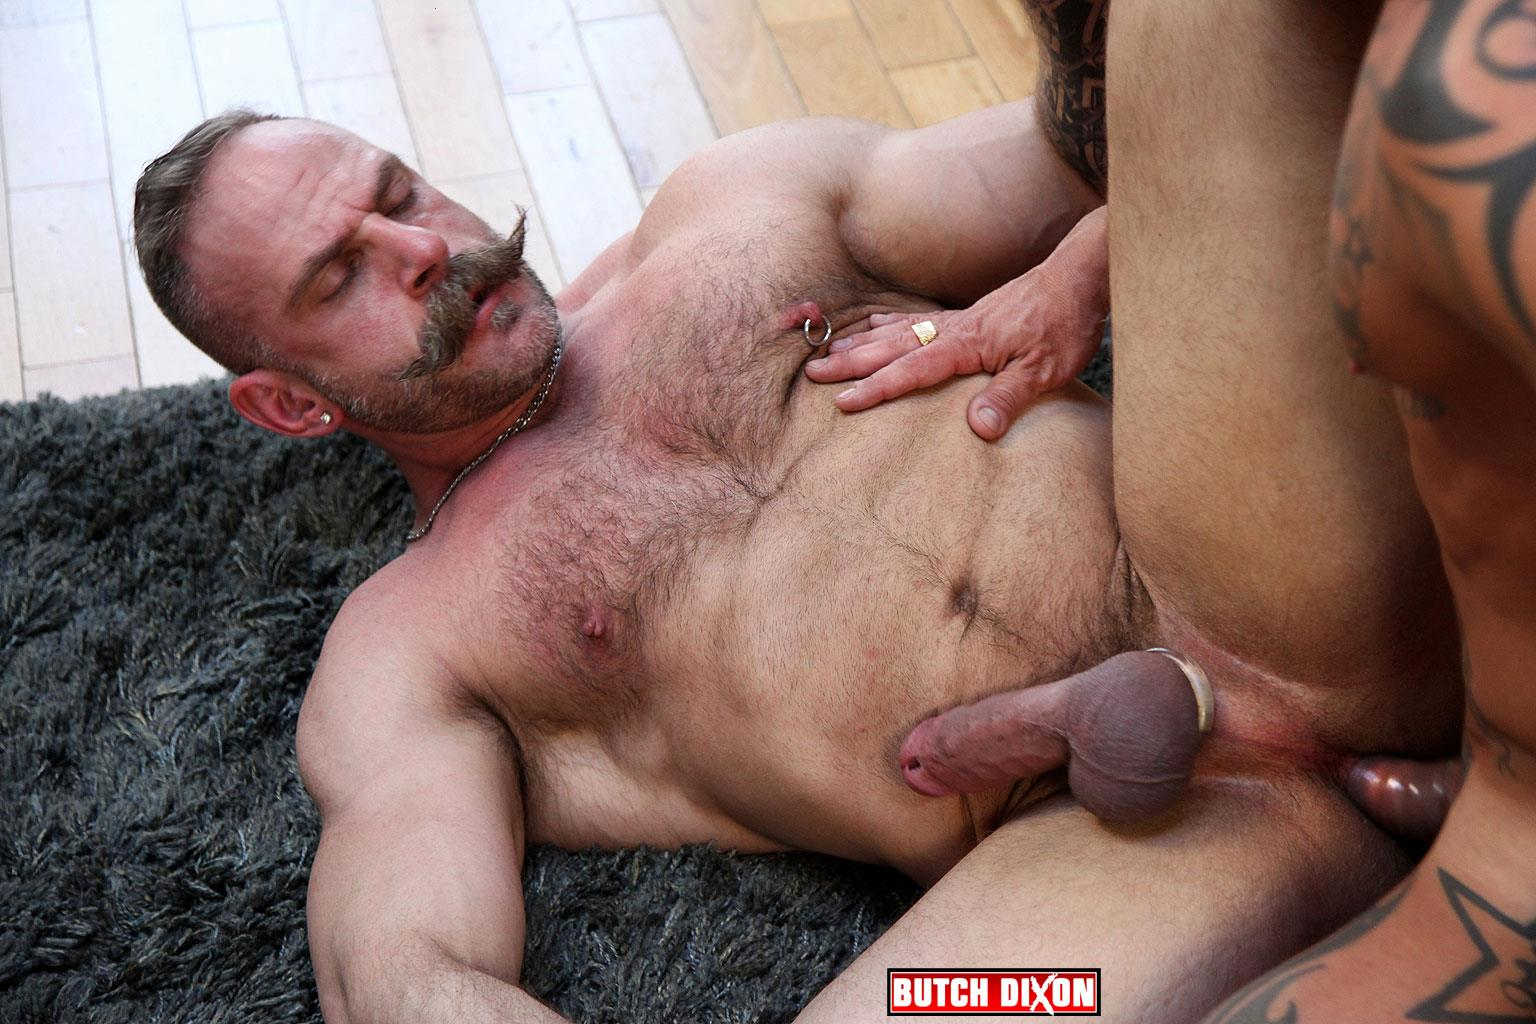 Butch Dixon Samuel Colt and Frank Valencia Hairy Muscle Daddy Getting Fucked By Latino Cock Amateur Gay Porn 13 Happy Fathers Day: Hairy Muscle Daddy Samuel Colt Taking A Big Cock Up The Ass